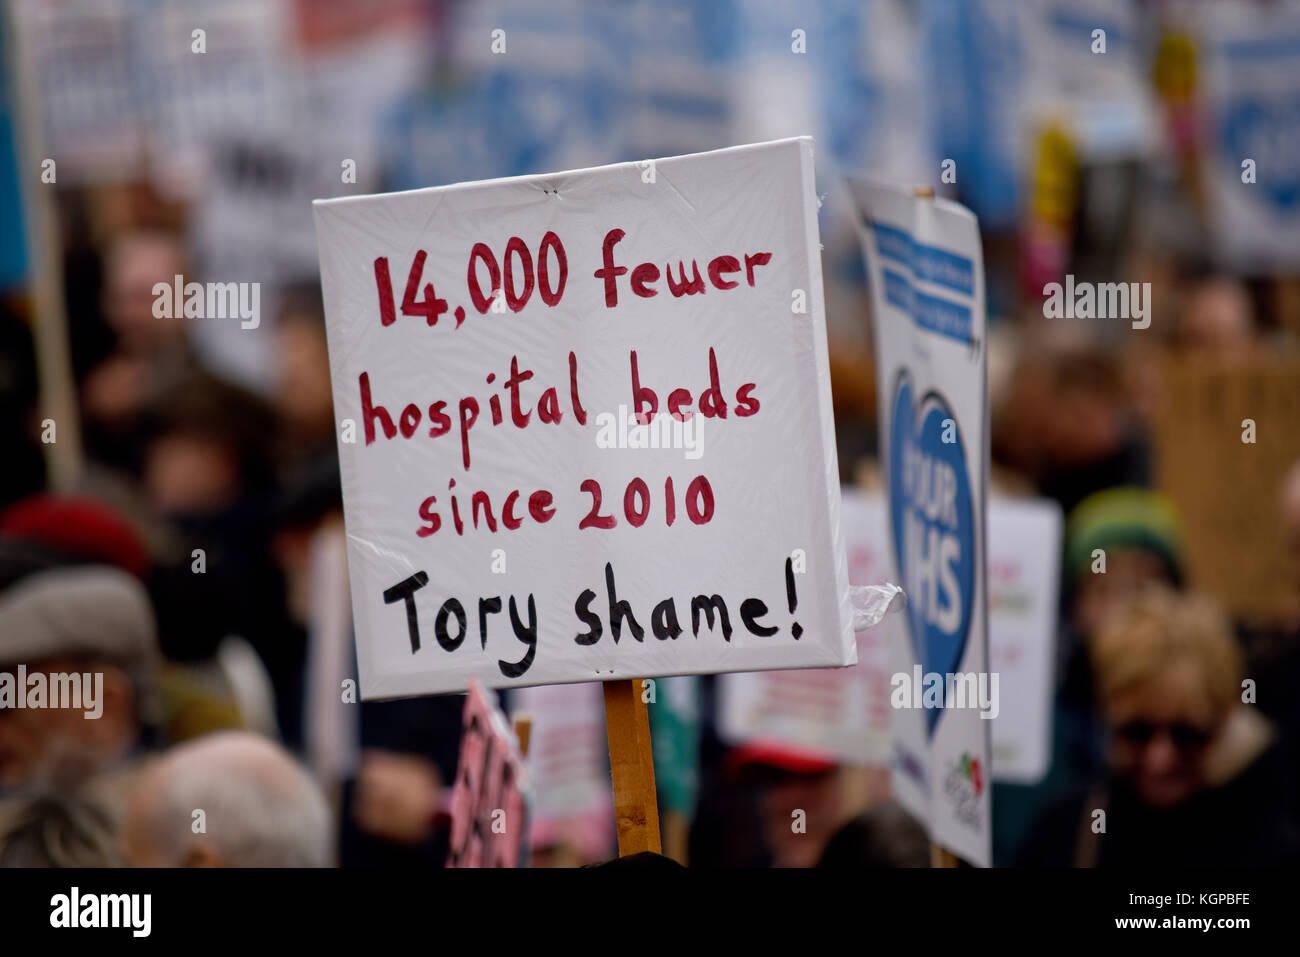 Fewer hospital beds since 2010 placard during Our NHS protest demonstration rally against alleged UK Tory Conservative - Stock Image